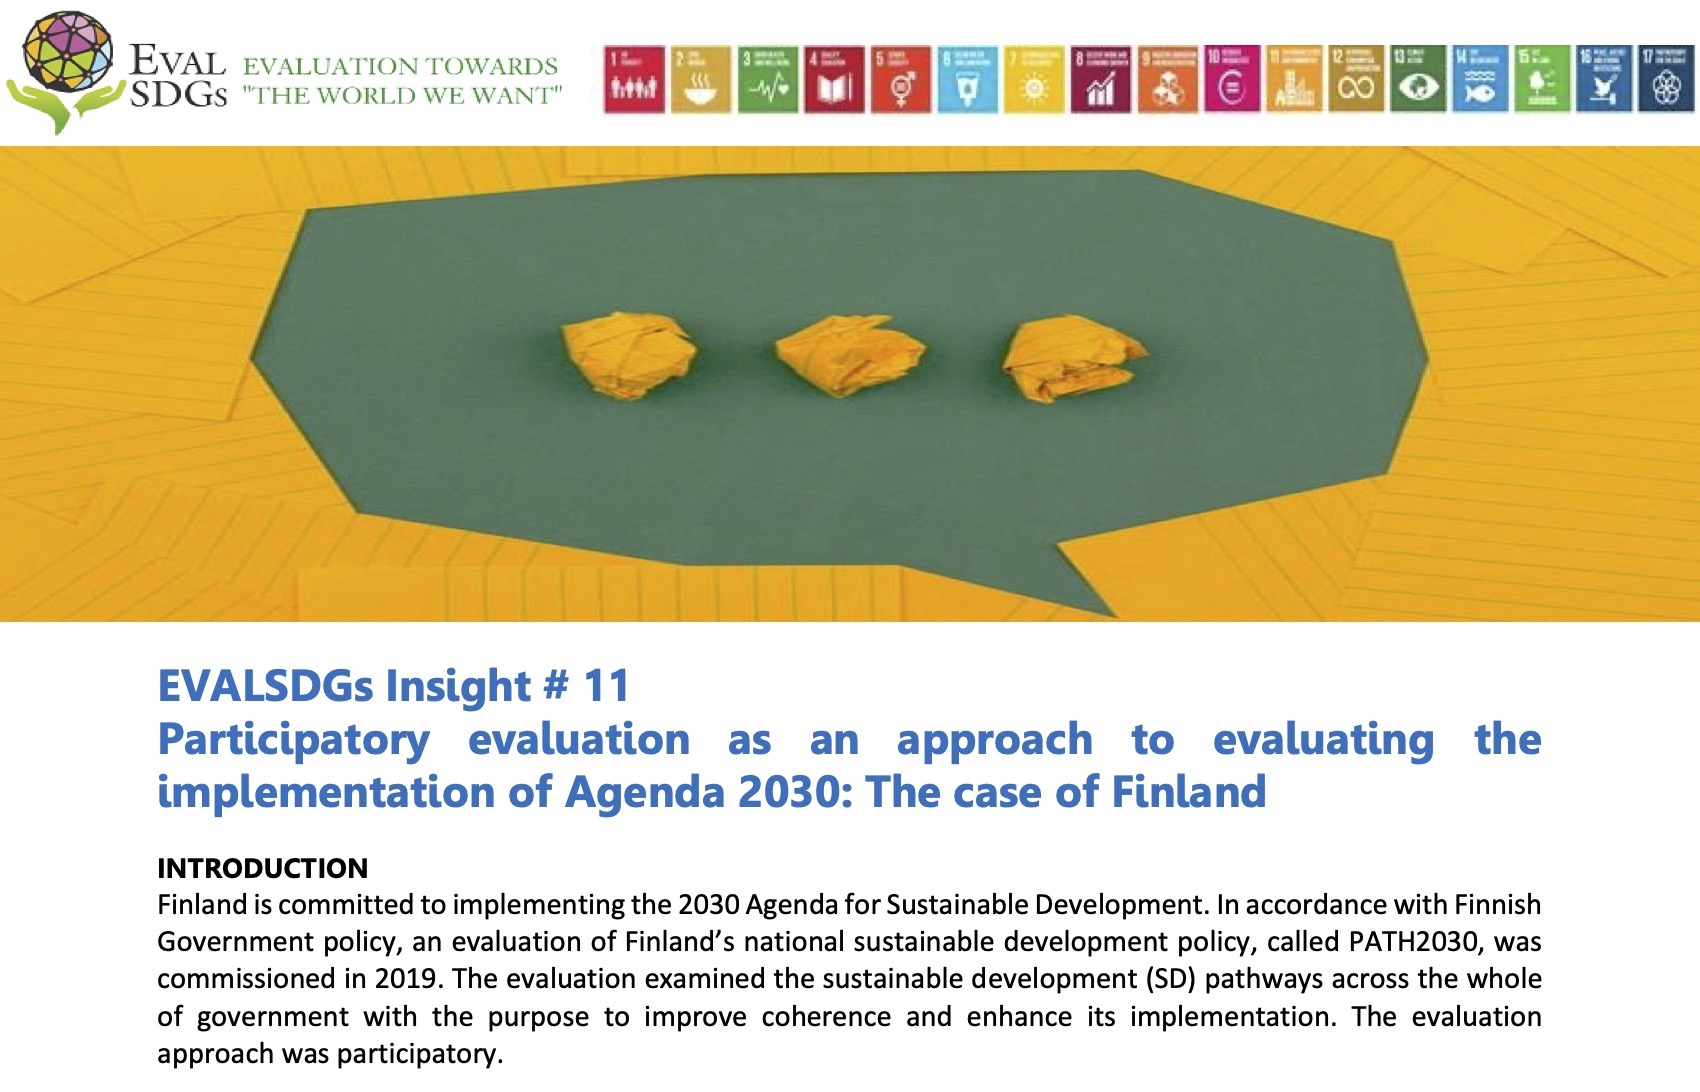 EVALSDGs Insight #11: Participatory evaluation as an approach to evaluating the implementation of Agenda 2030: The case of Finland